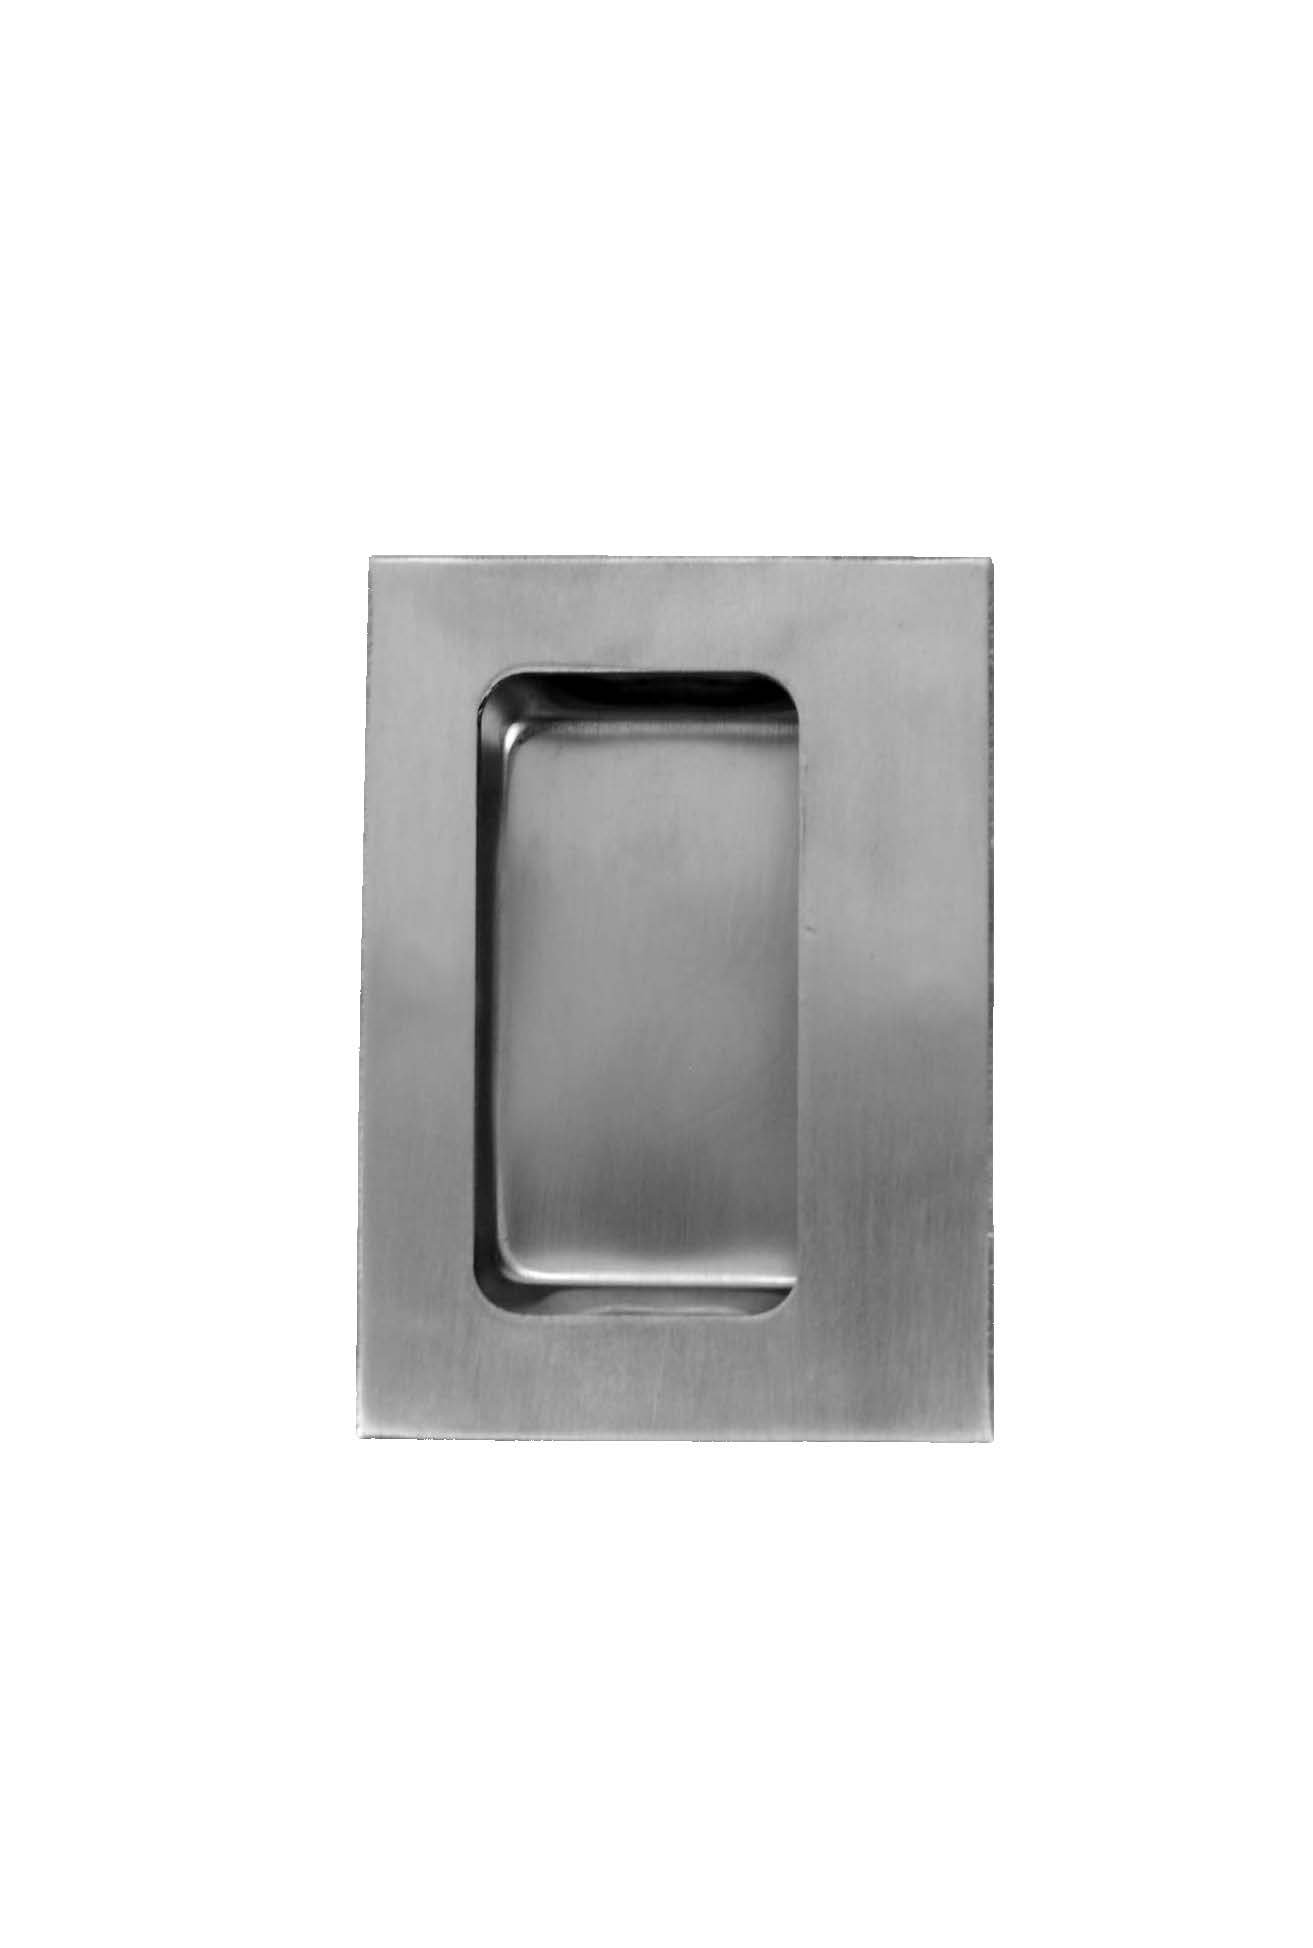 Don-Jo 1848 16 Gauge Stainless Steel Flush Cup Pull, Satin Stainless Steel Finish, 3-1/2'' Width x 4-3/4'' Height x 3/4'' Depth